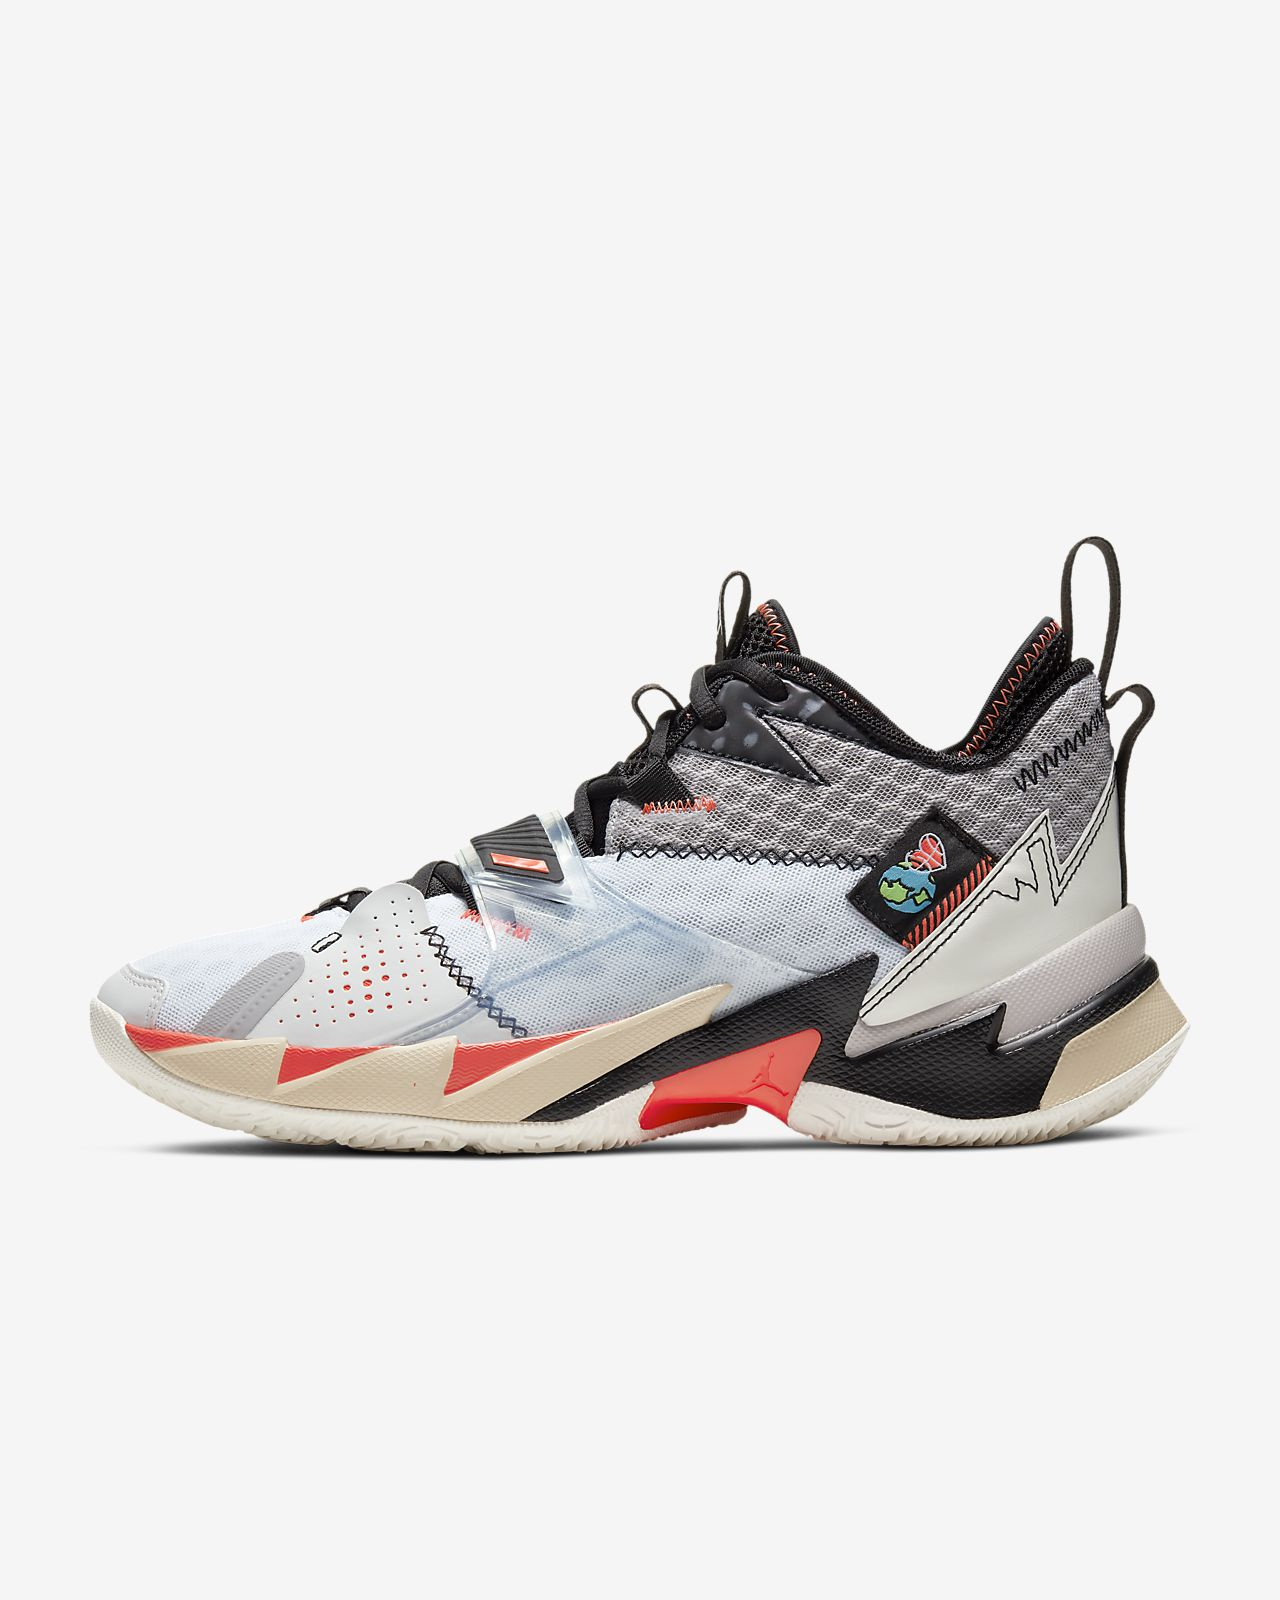 Jordan Why Not? Zer0.3 Basketball Shoe